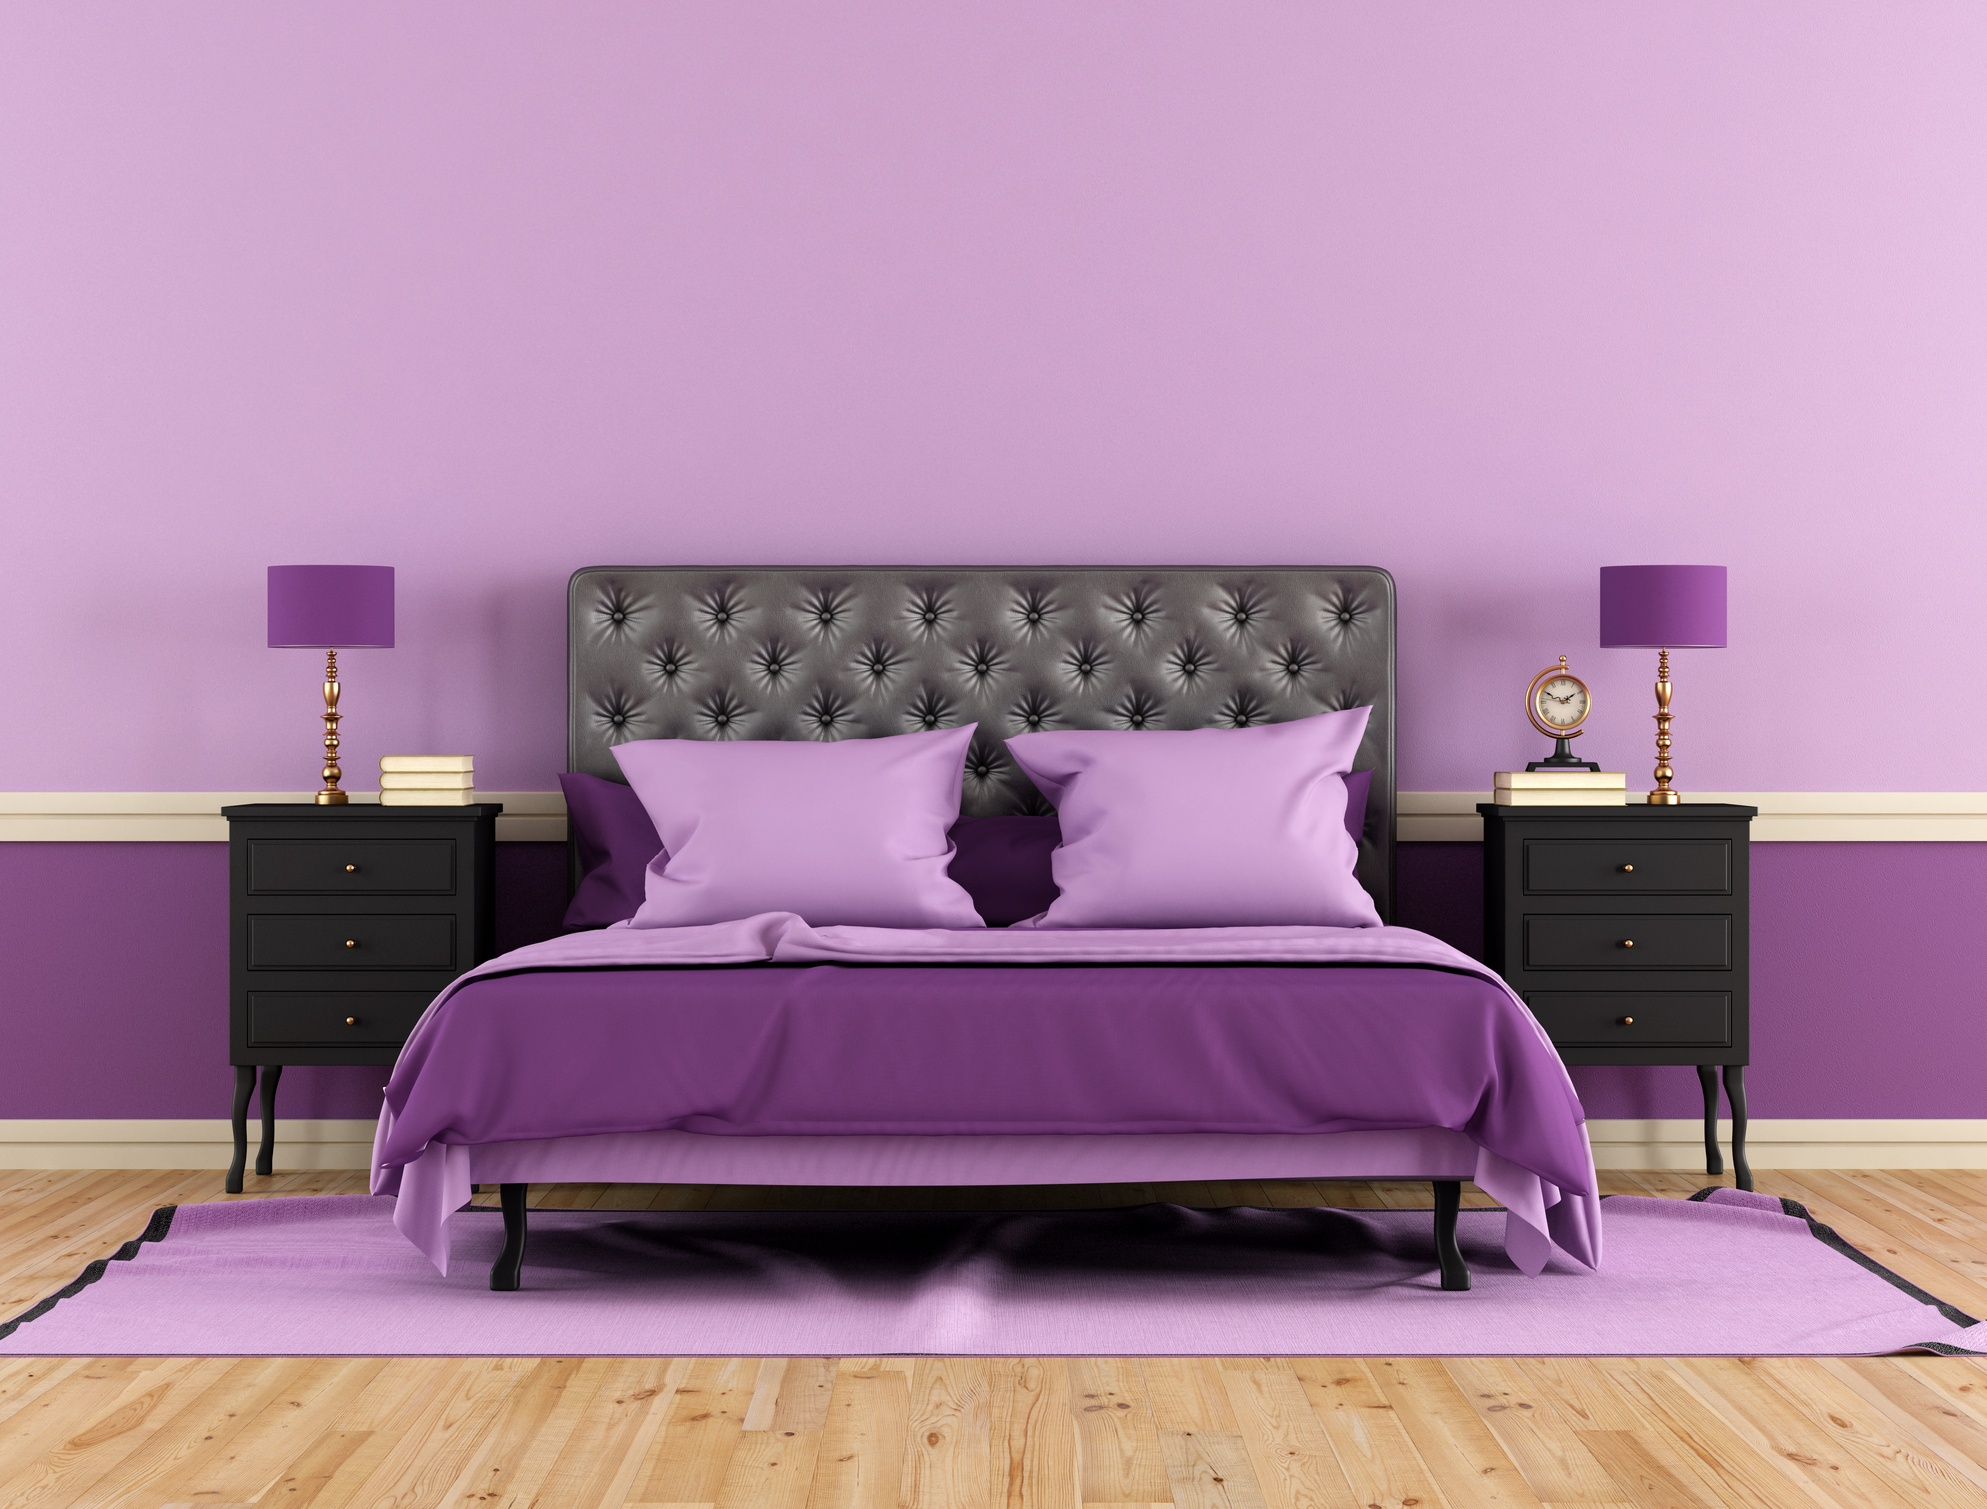 Bedroom with purple bed, walls and lamps